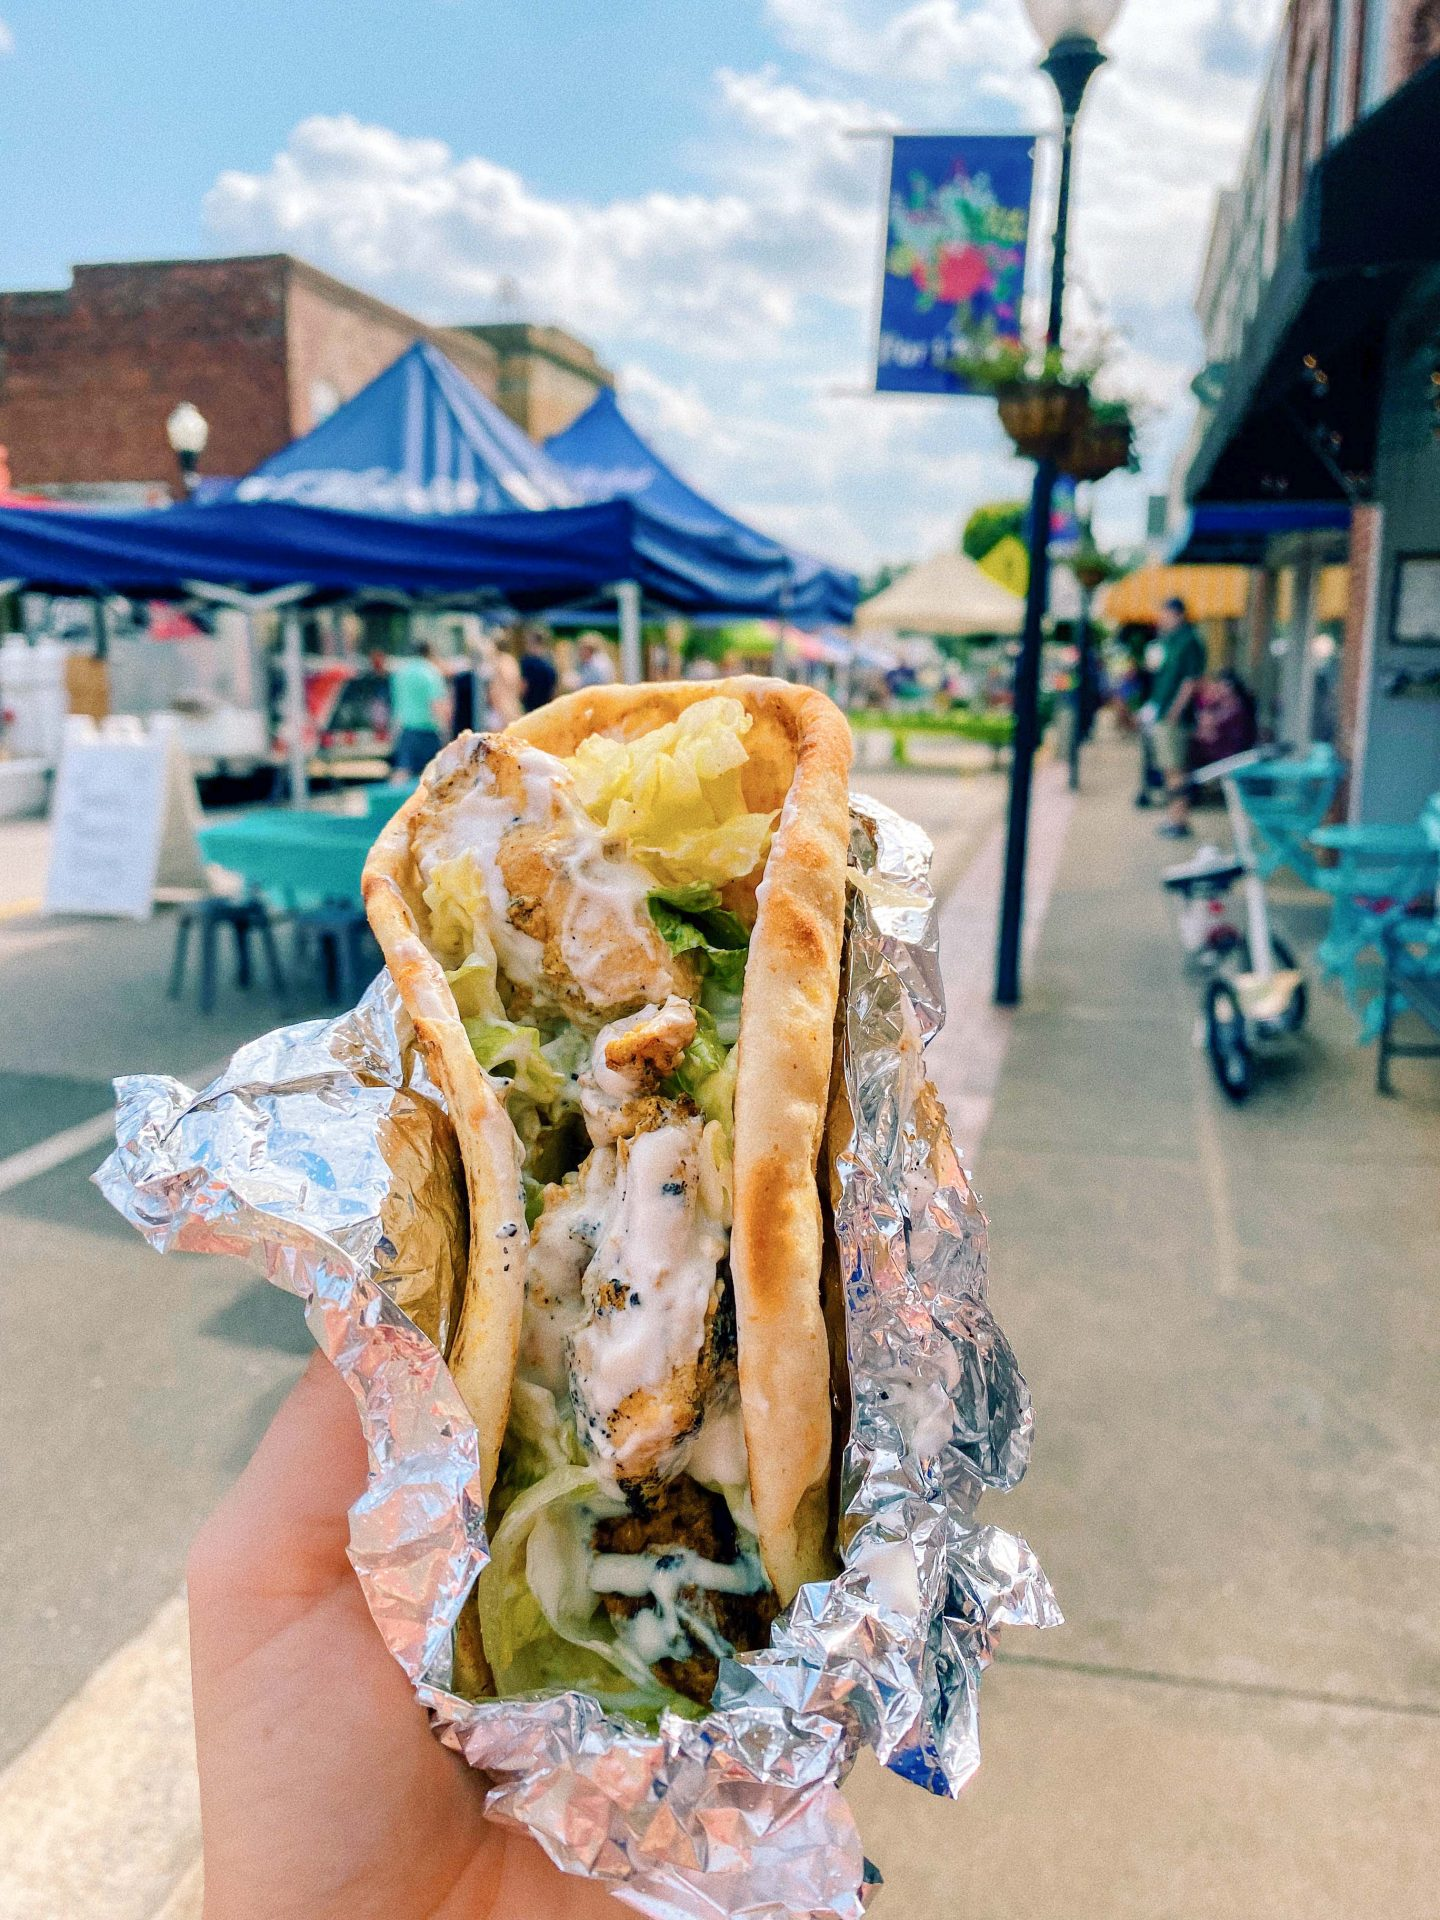 fort mill South Carolina, chickpeasy food truck, gelato, downtown fort mill, market, jam, weekends in fort mill, weekends on main